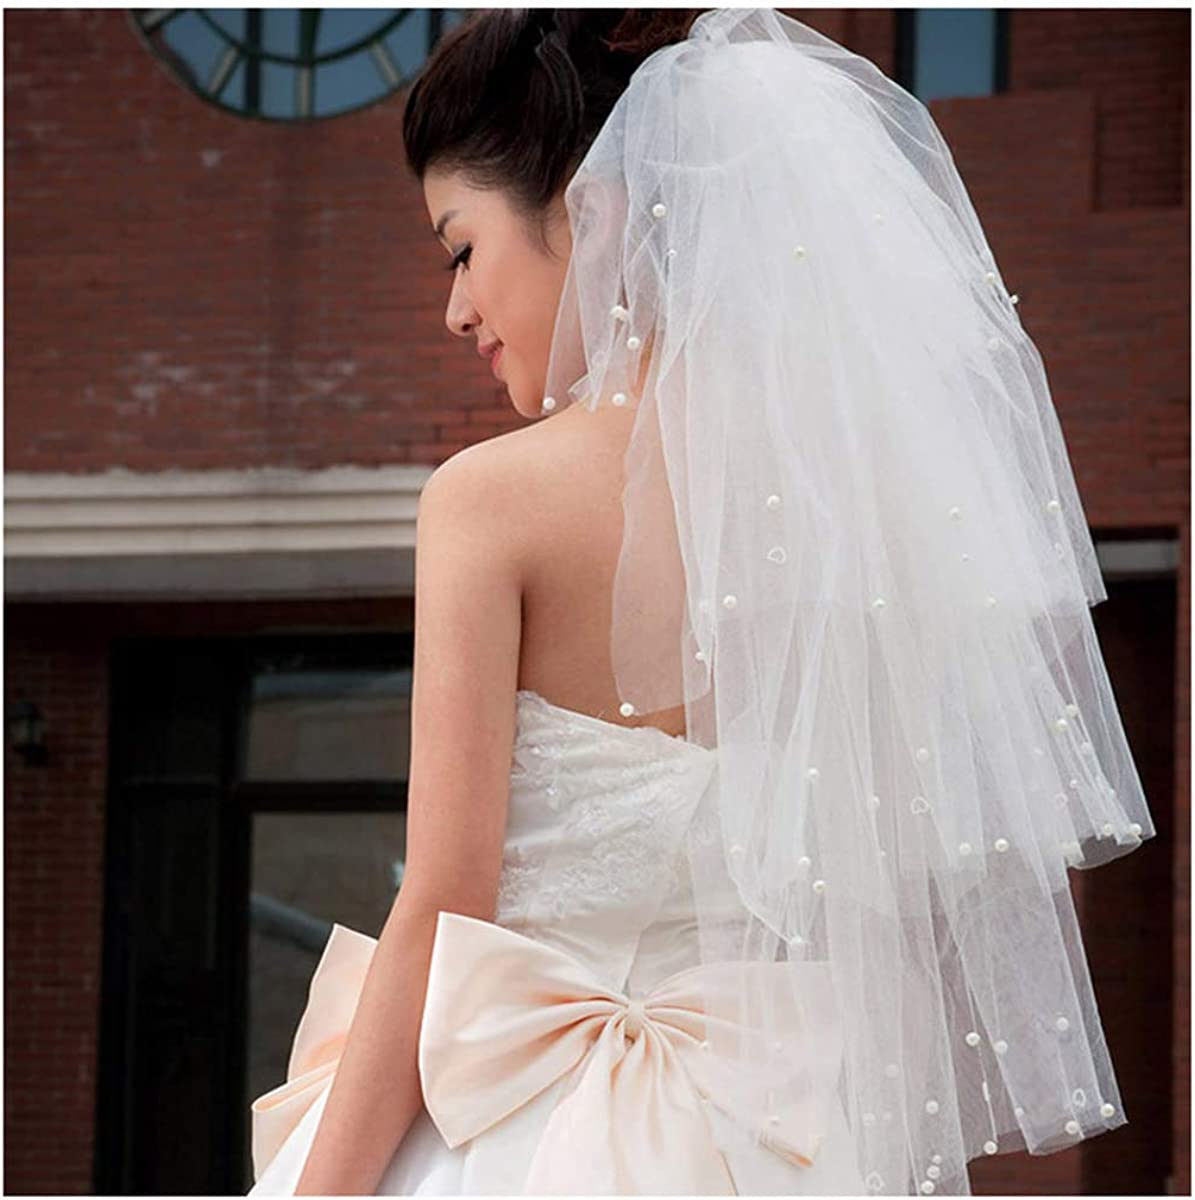 CanB Wedding Veil Bride Elbow Length Pearl veil with Comb Crystal Soft Tulle Bridal Hair Accessories for Women and Girls